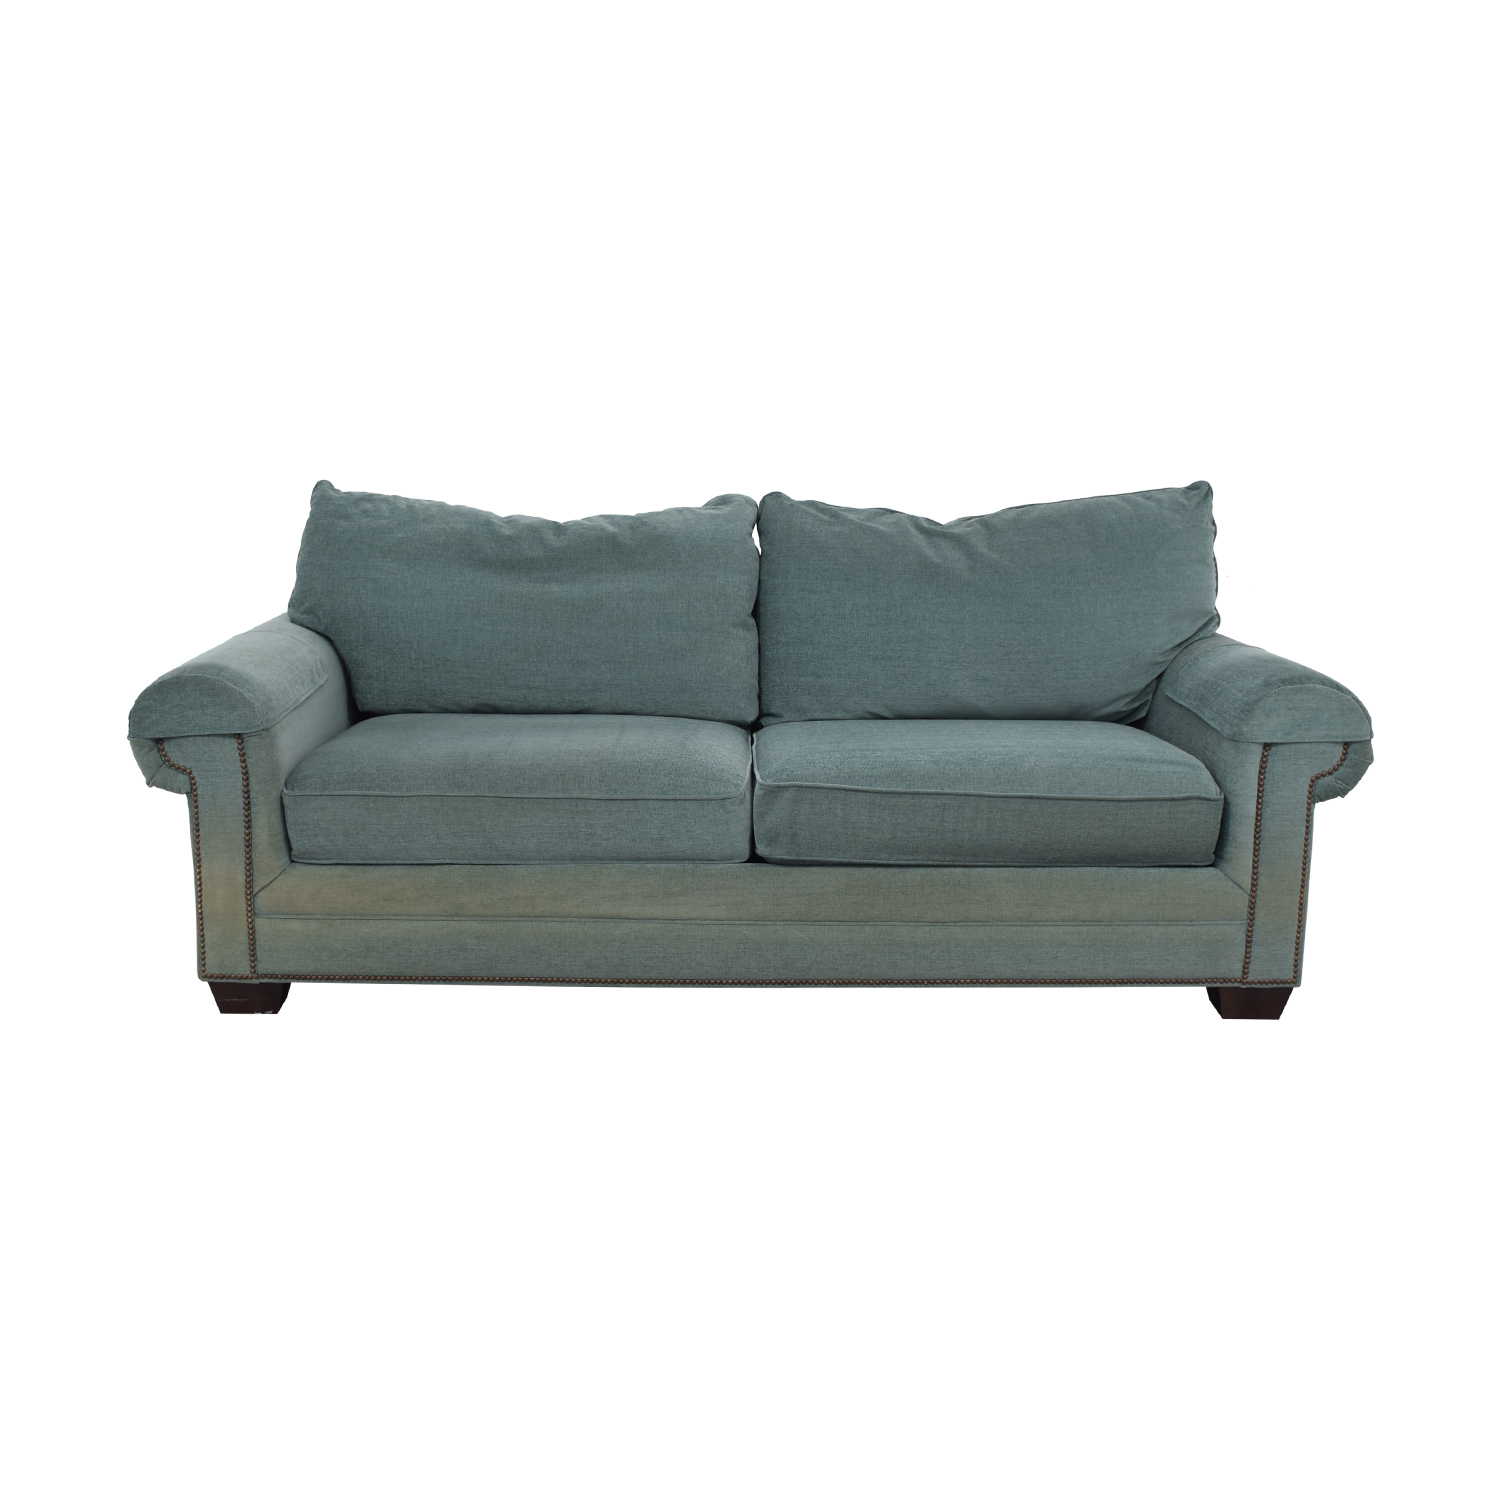 Bassett Furniture Bassett Furniture Sofa used